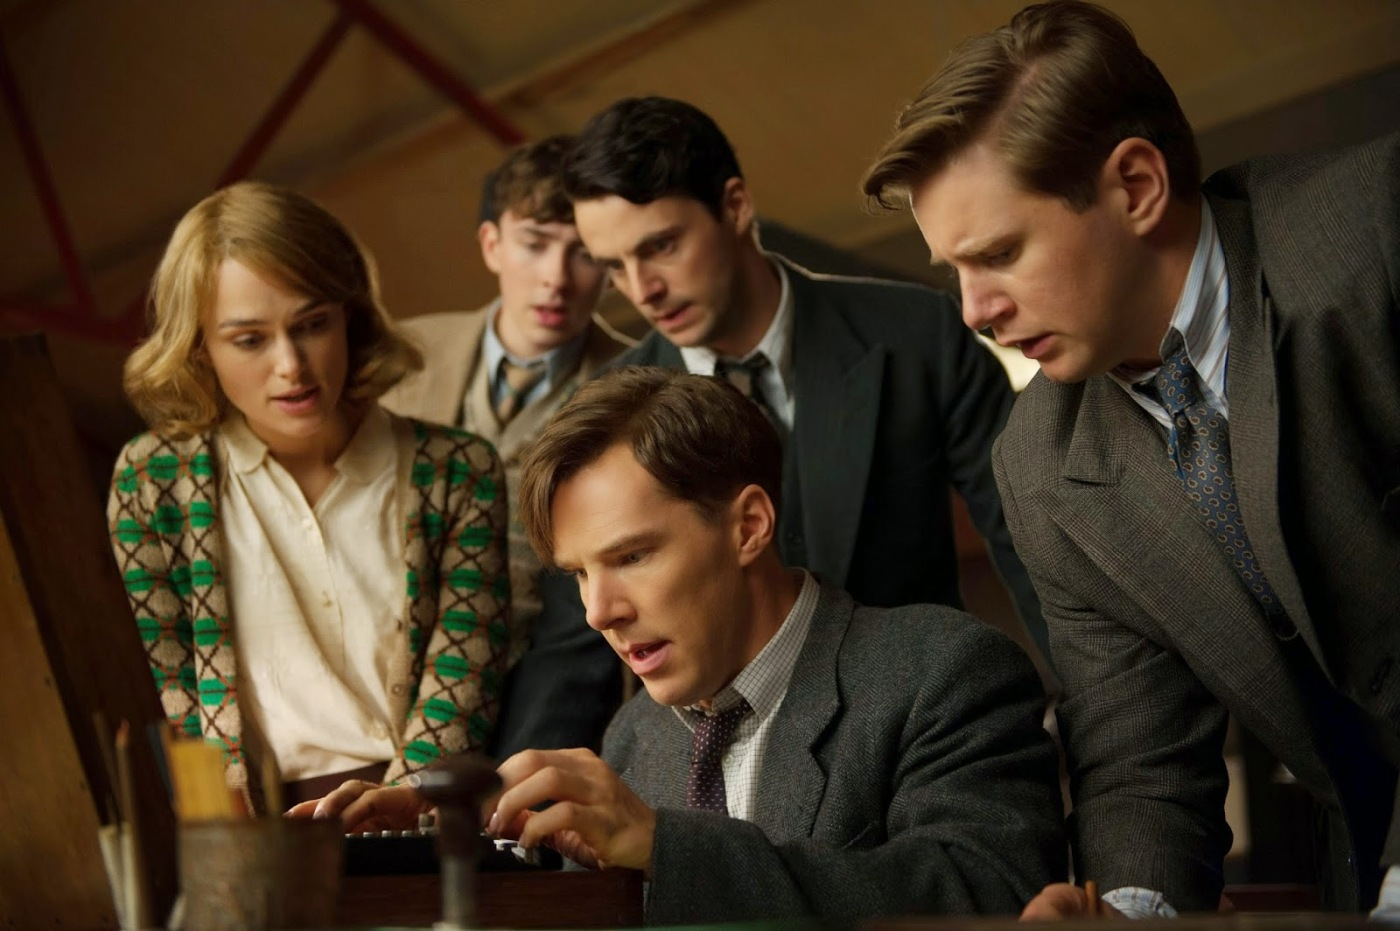 Scena da The Imitation game